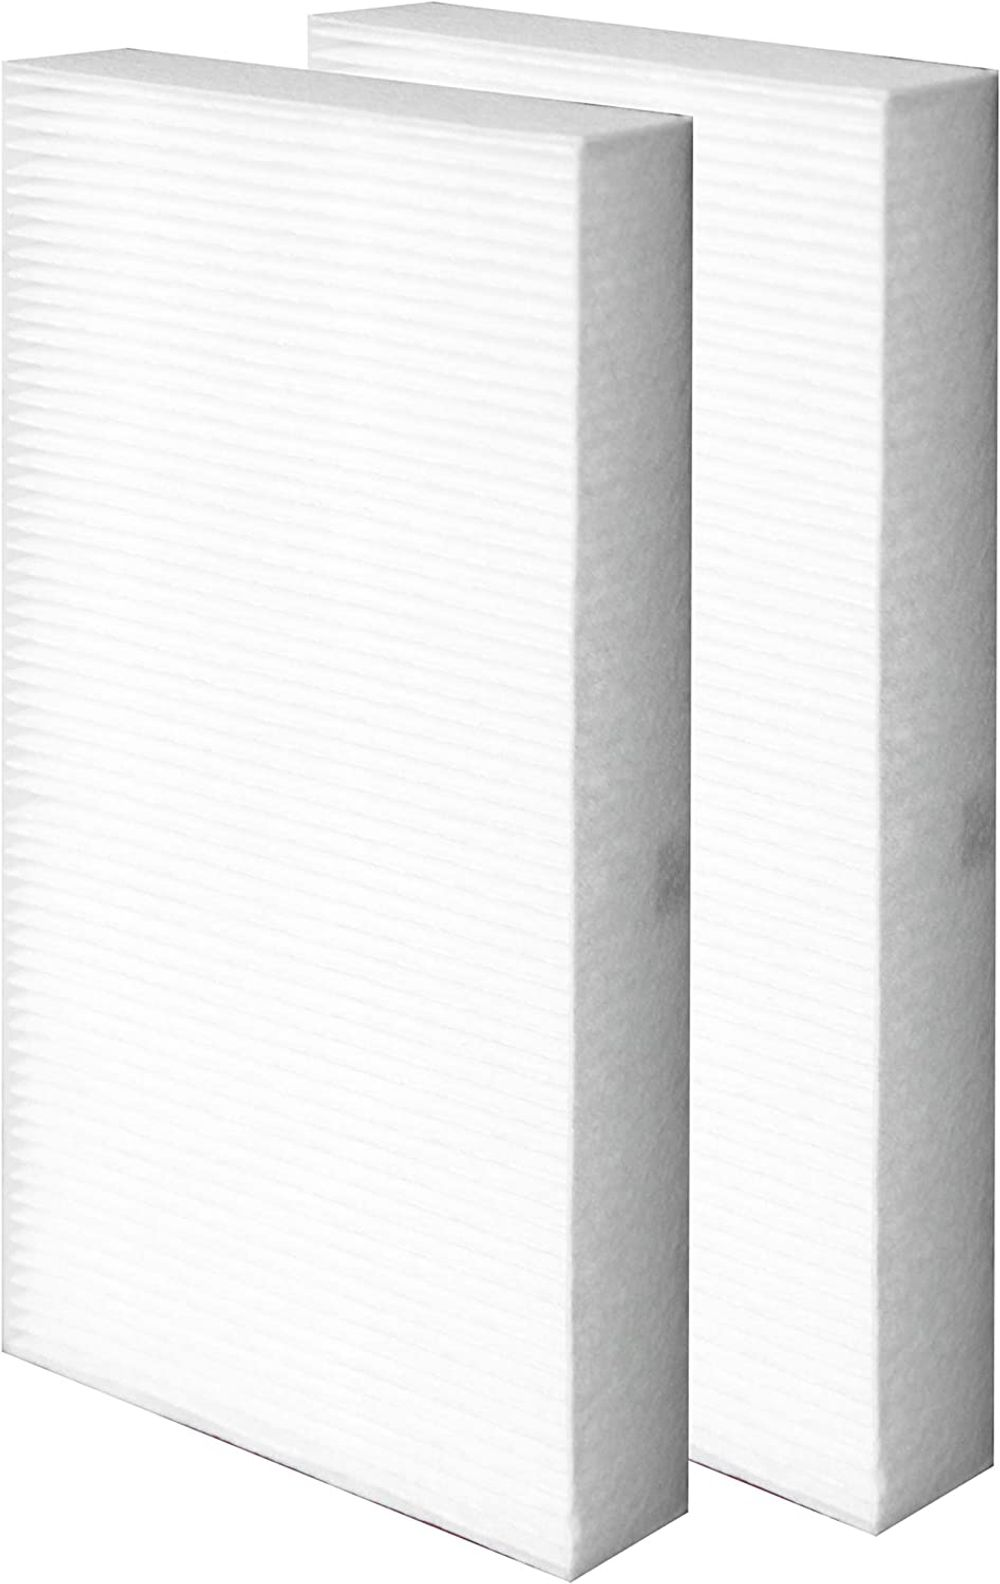 Flintar 2-Pack of Dual Action H13 Grade True HEPA Replacement Filter U, Compatible with Honeywell HEPAClean Replacement U Filter HRF201B, Fits HW Air Purifier HHT270, HHT290 Series